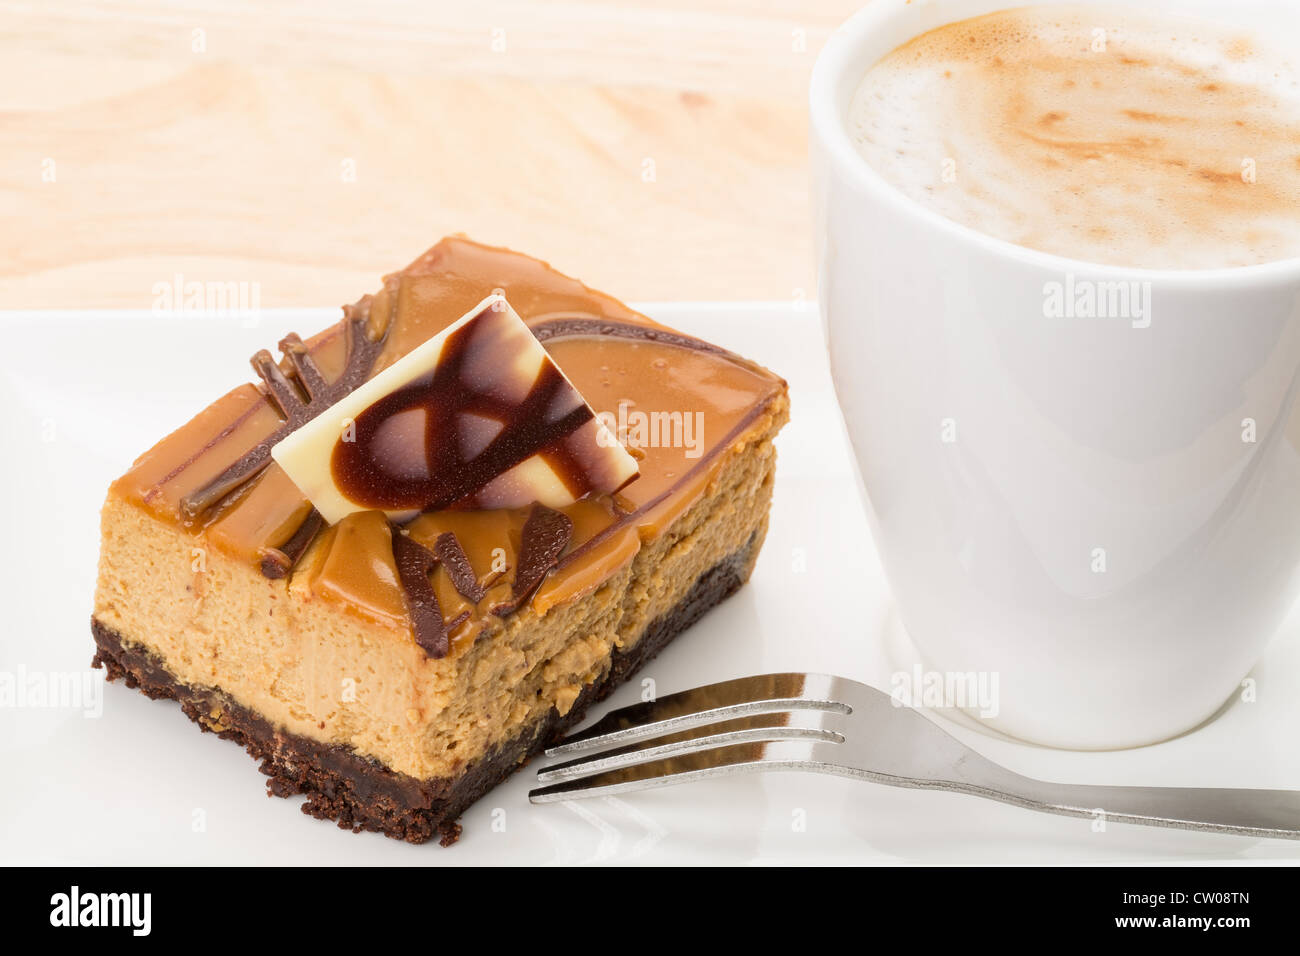 Slice of caramel cheesecake with a cup of coffee - studio shot - Stock Image